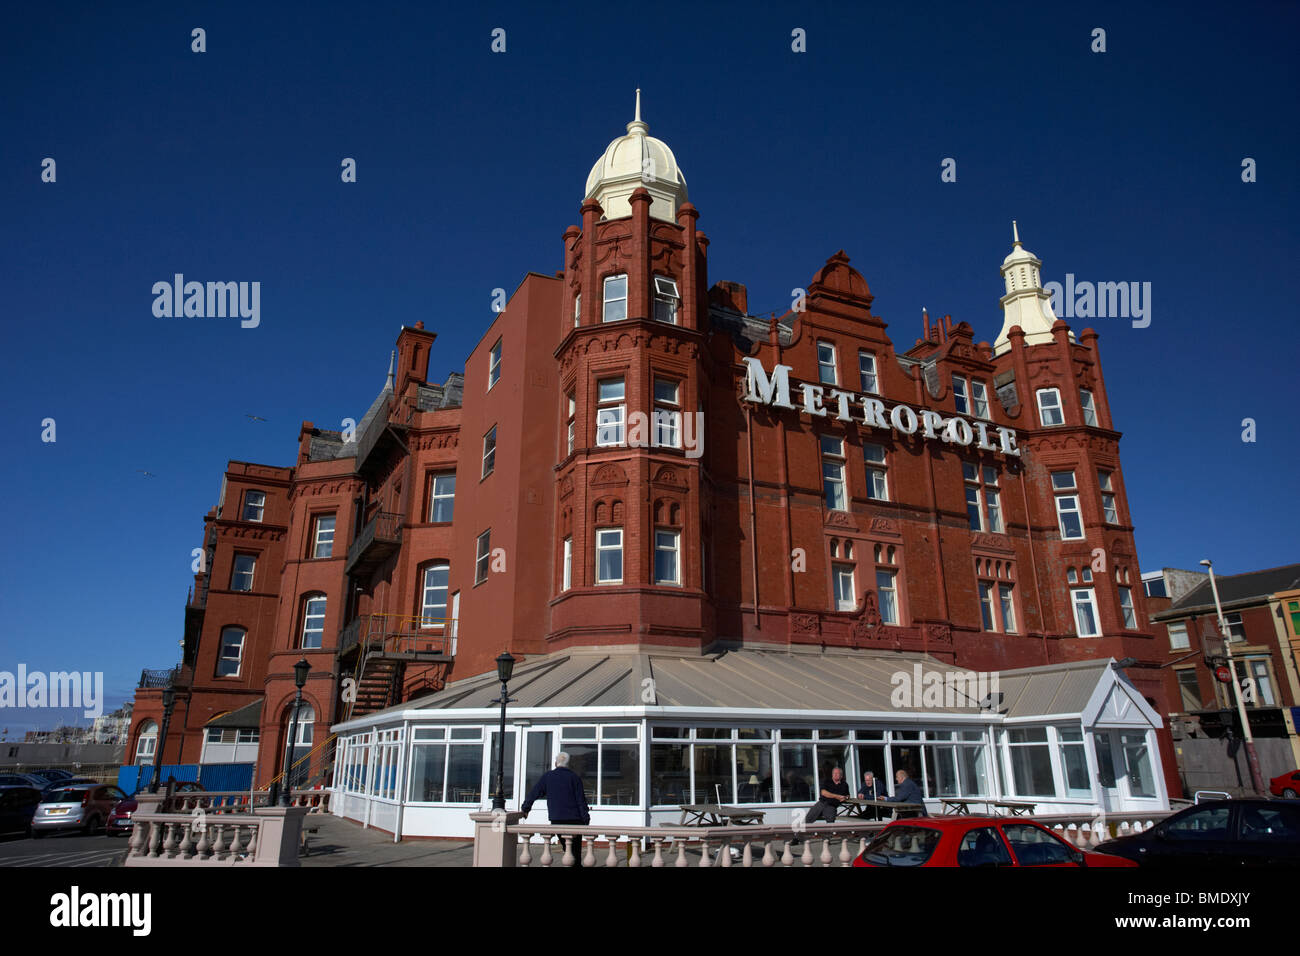 the grand metropole hotel Blackpool seafront lancashire england uk - Stock Image